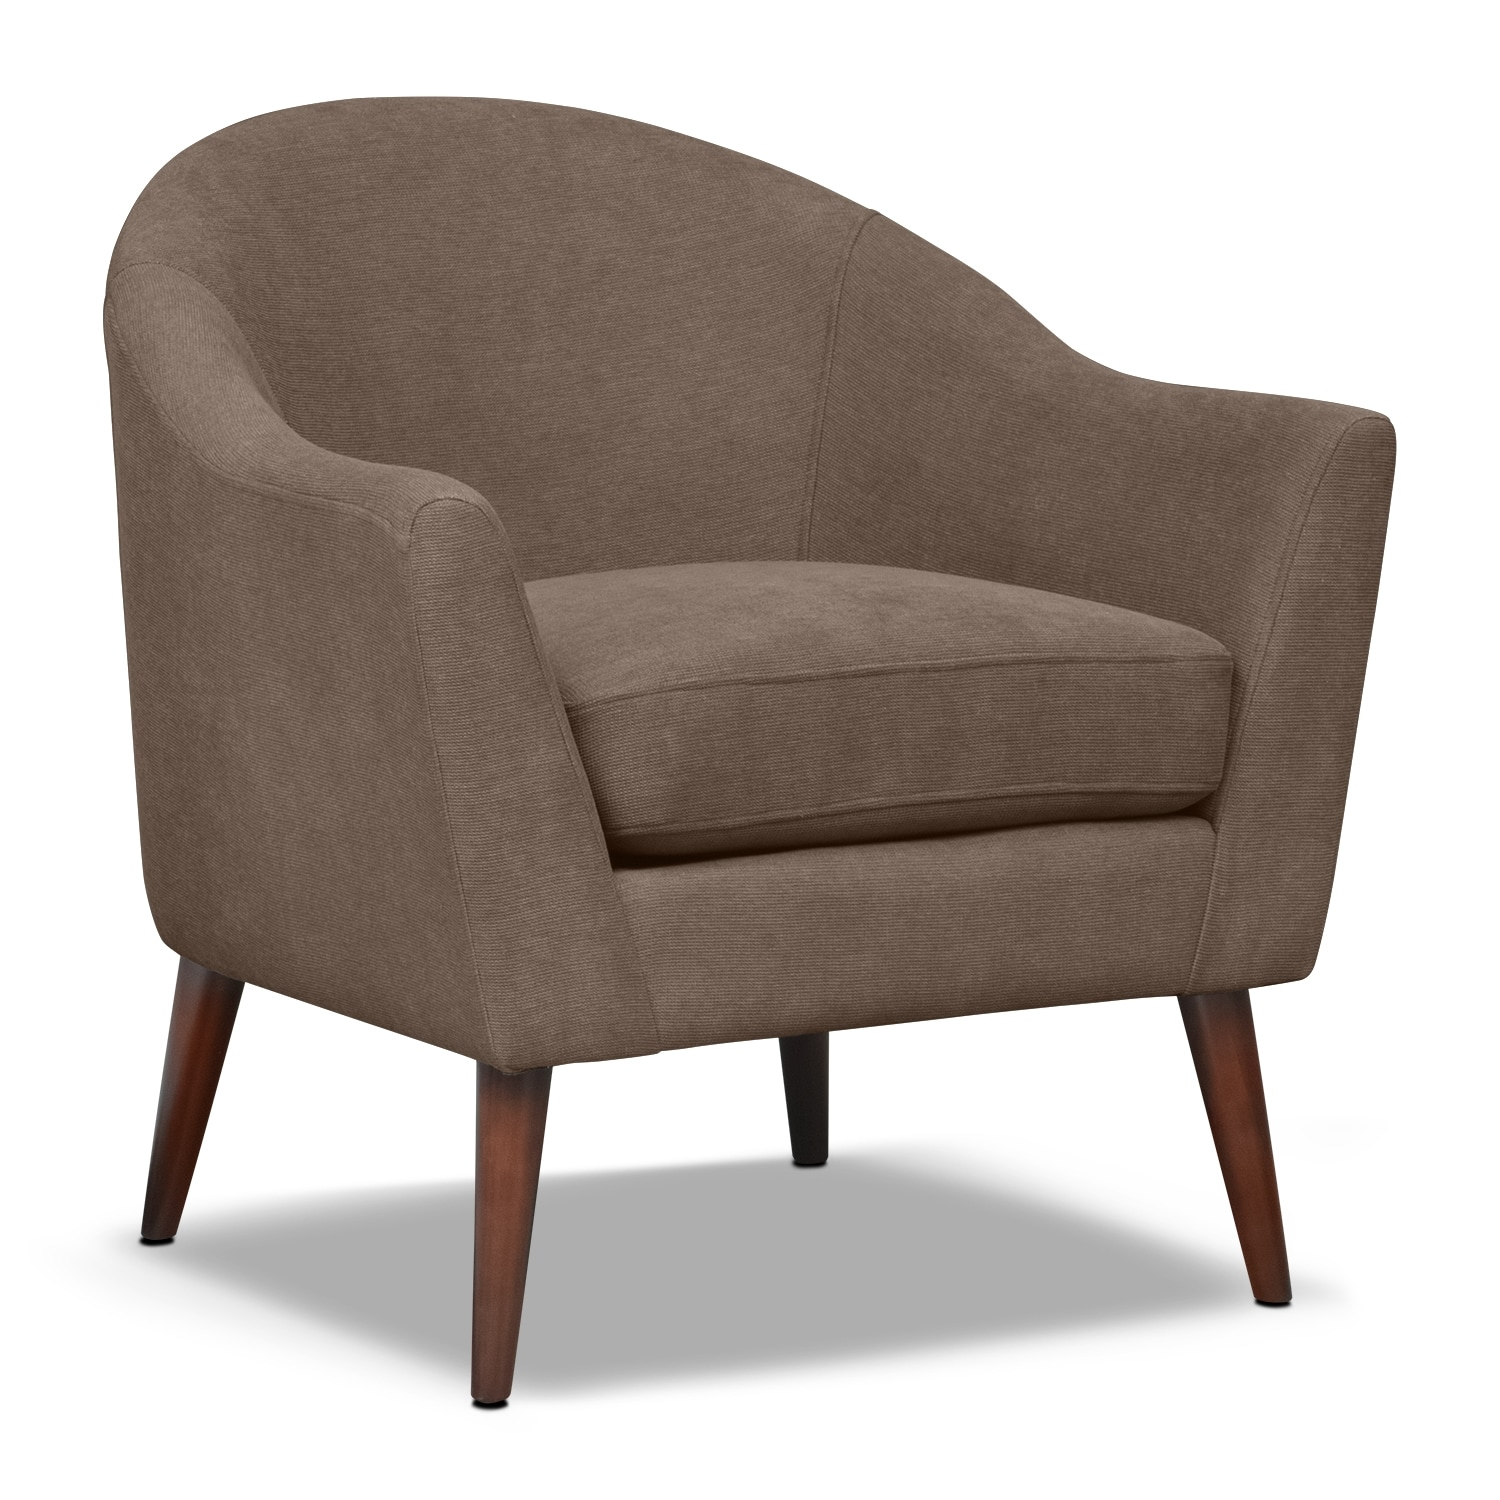 Accent and Occasional Furniture - Rosa Accent Chair - Mocha